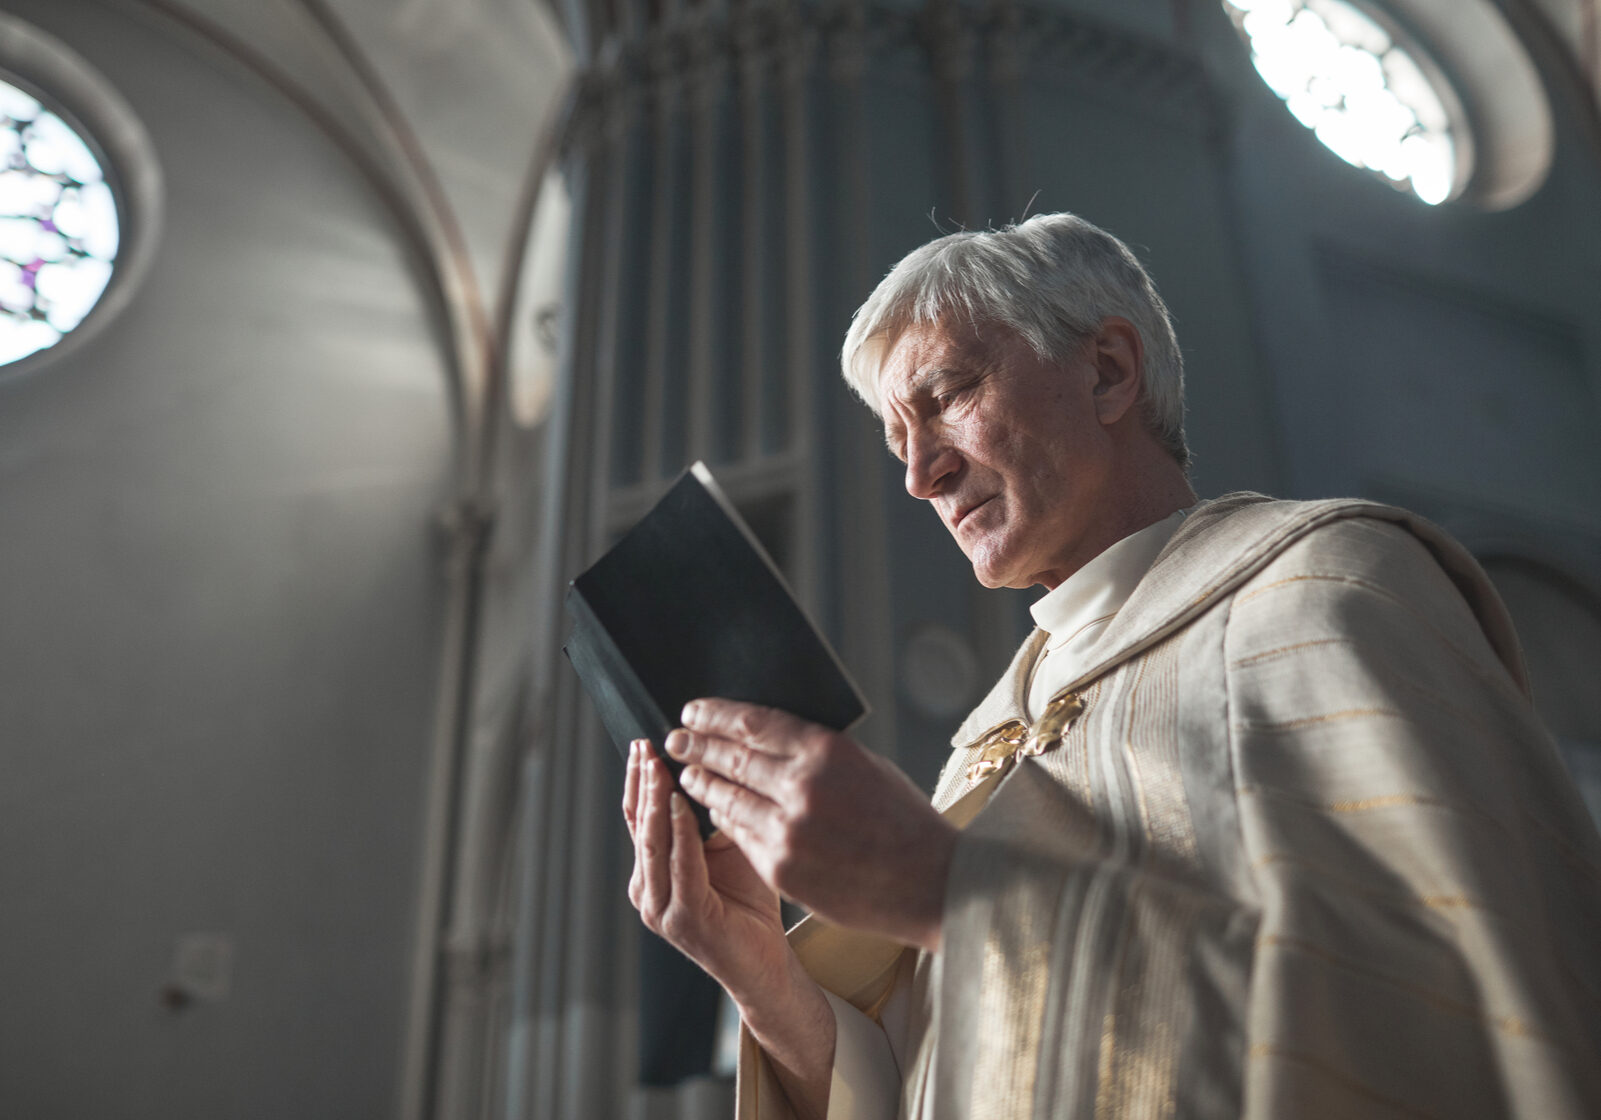 Senior priest in formal costume reading prayers while holding ceremony in the church